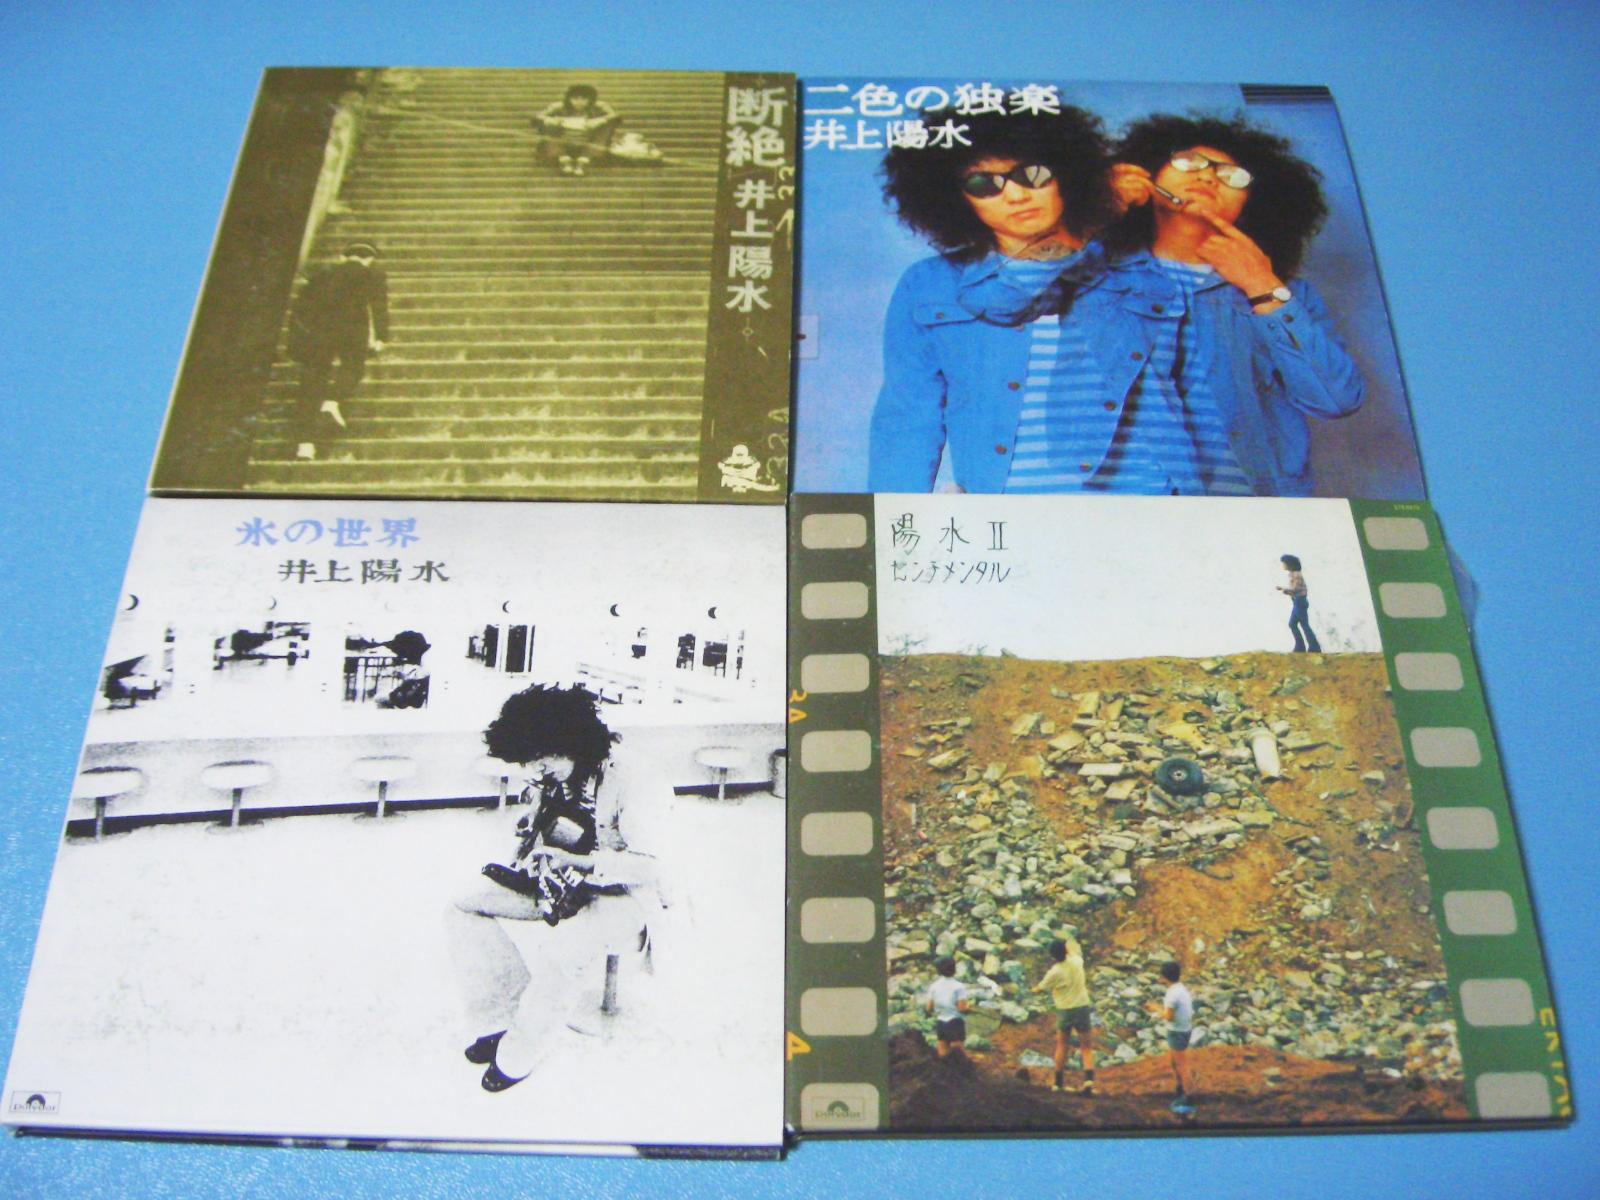 井上陽水 / GOLDEN YEARS 1972-1974_c0062649_23102472.jpg